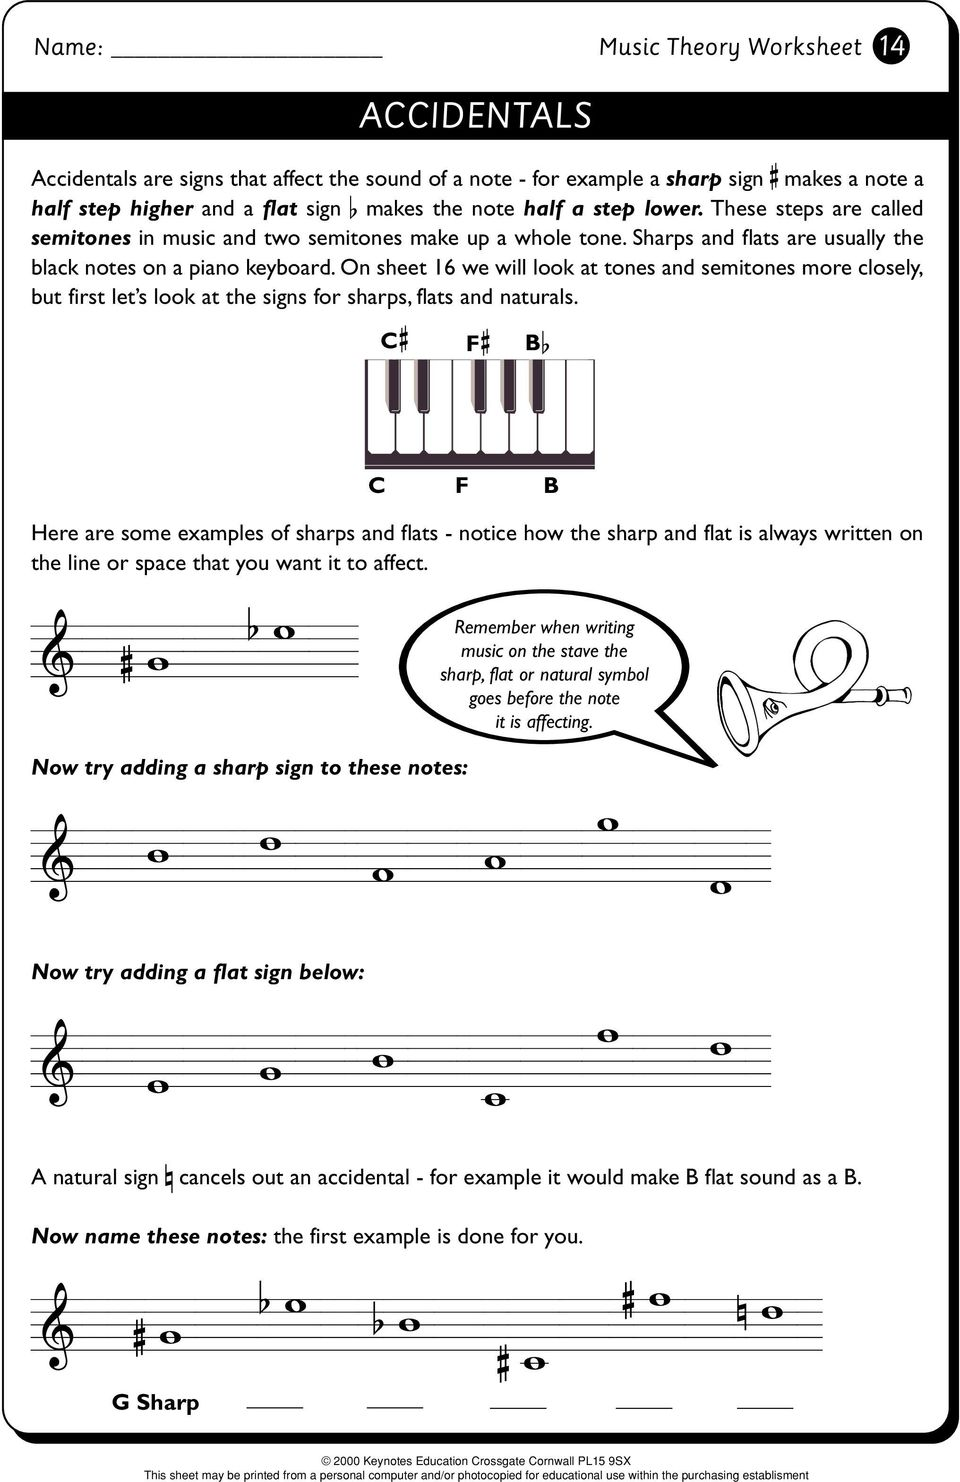 music theory worksheet music theory 1 pdf. Black Bedroom Furniture Sets. Home Design Ideas